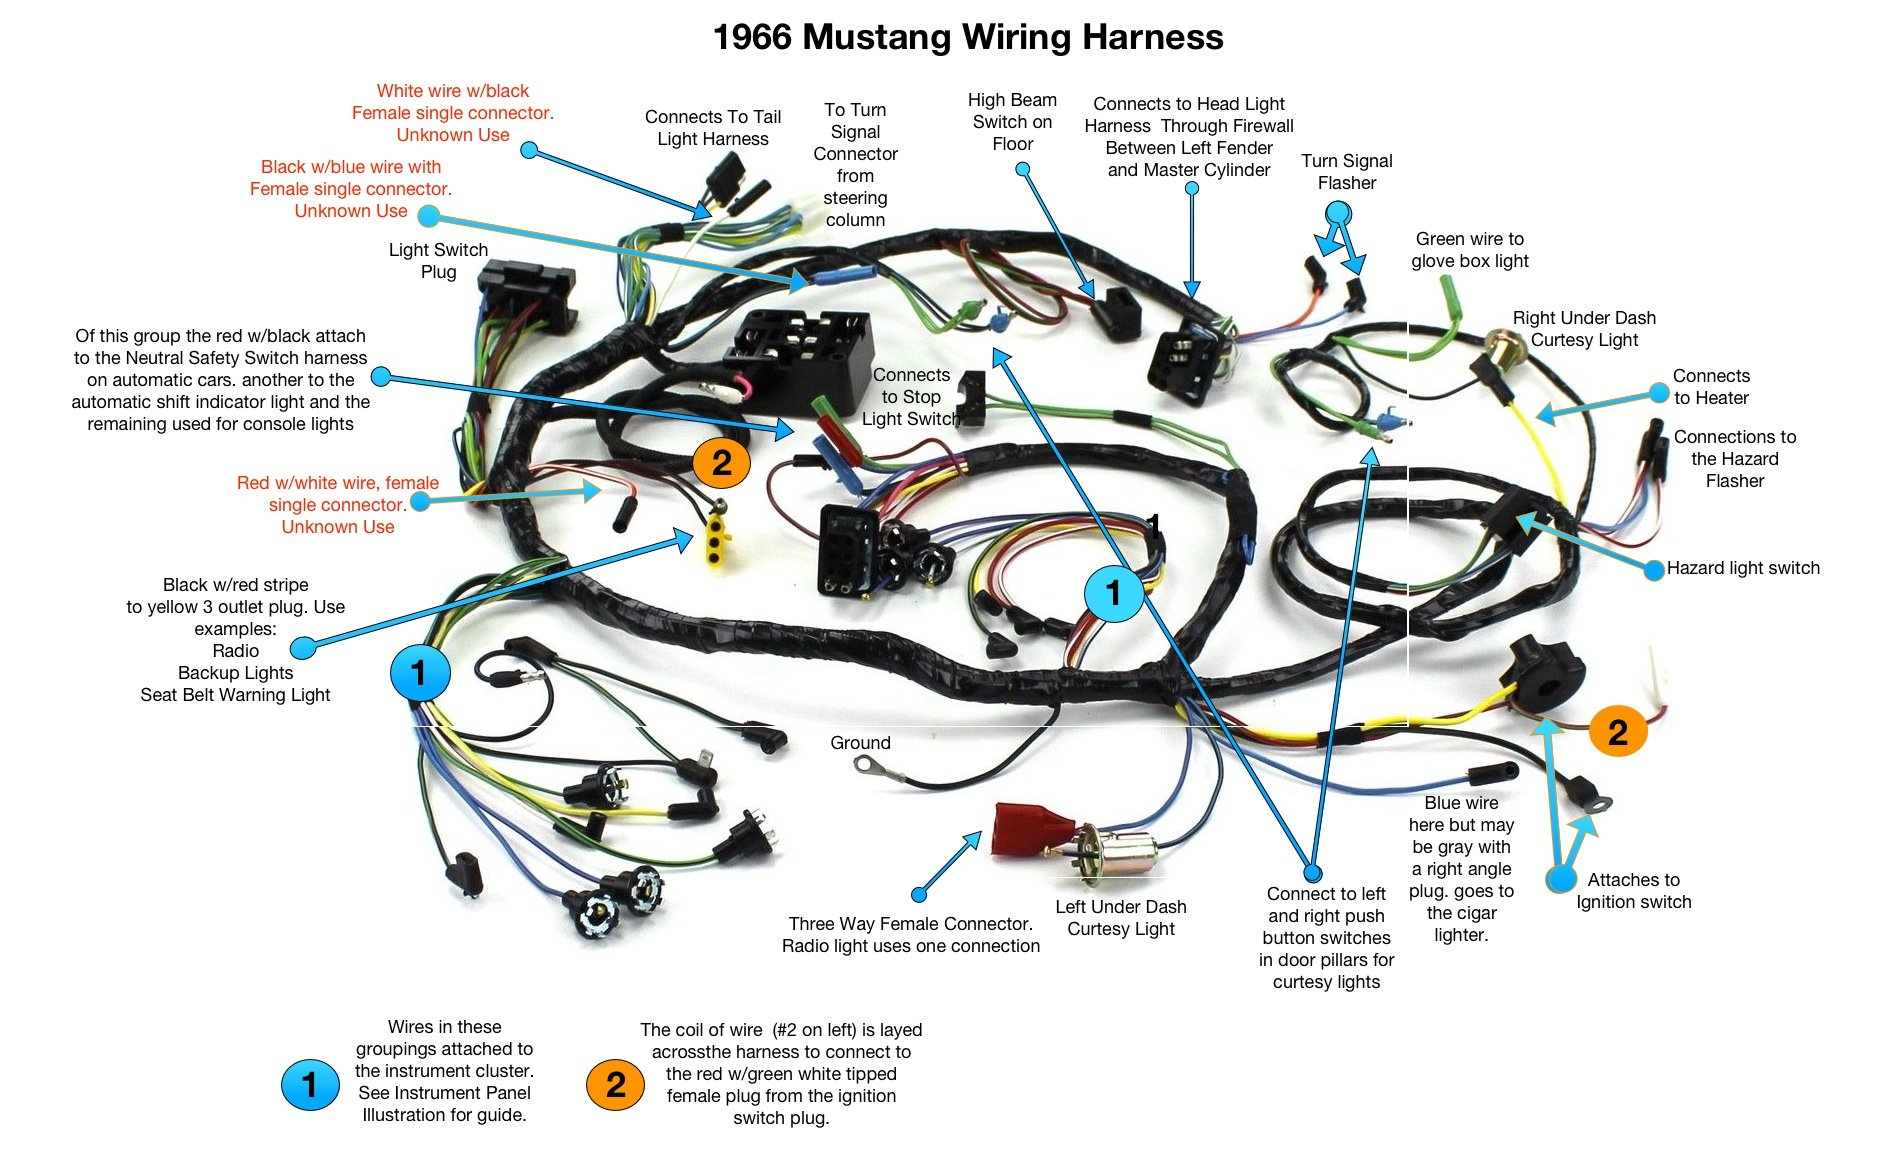 Engine Wiring Harness Diagram Data 66 Mustang Free Car Wire Diagrams Schema Exhaust